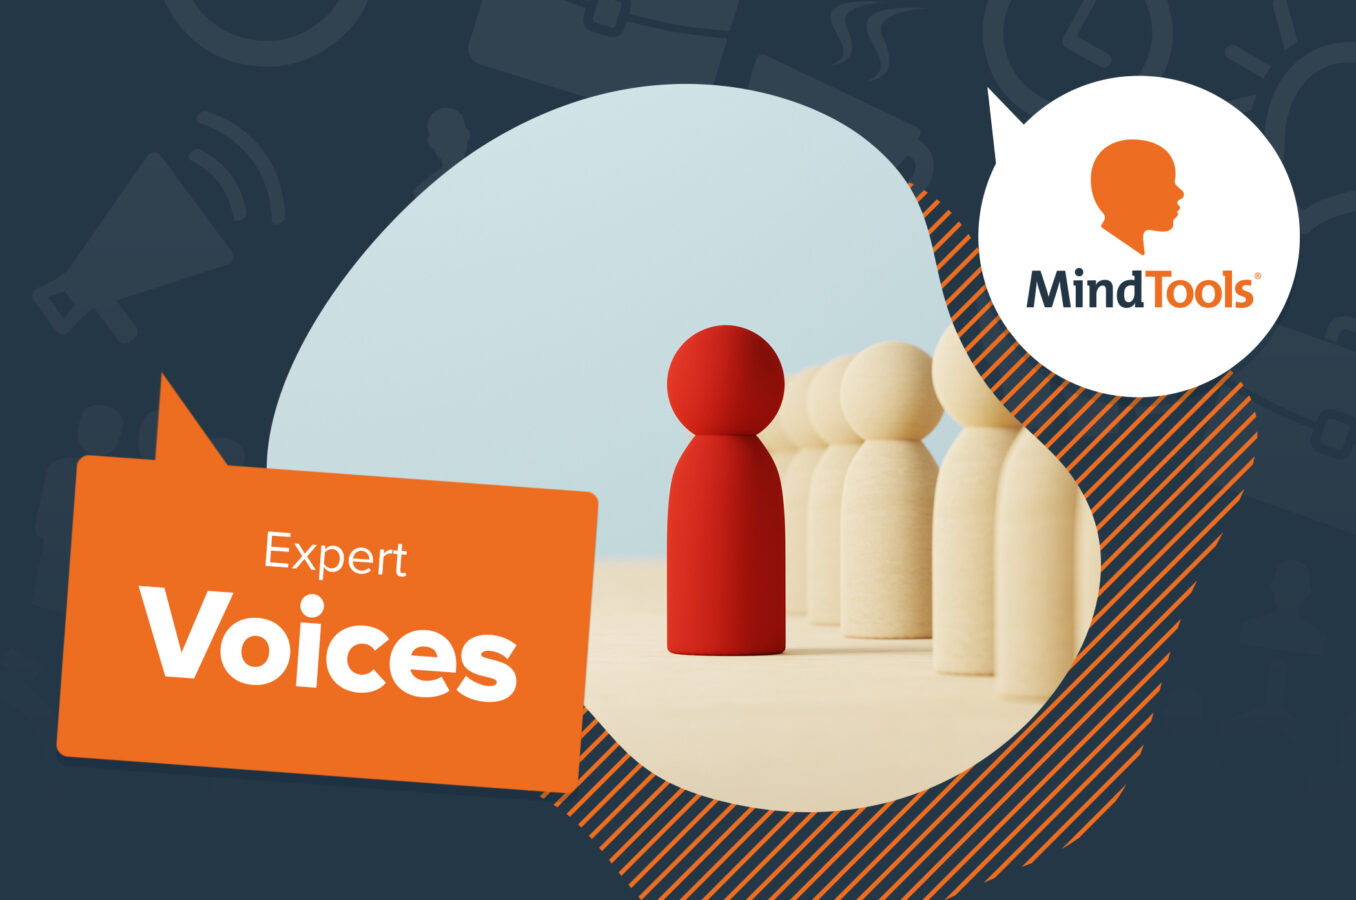 Mind Tools Expert Voices title